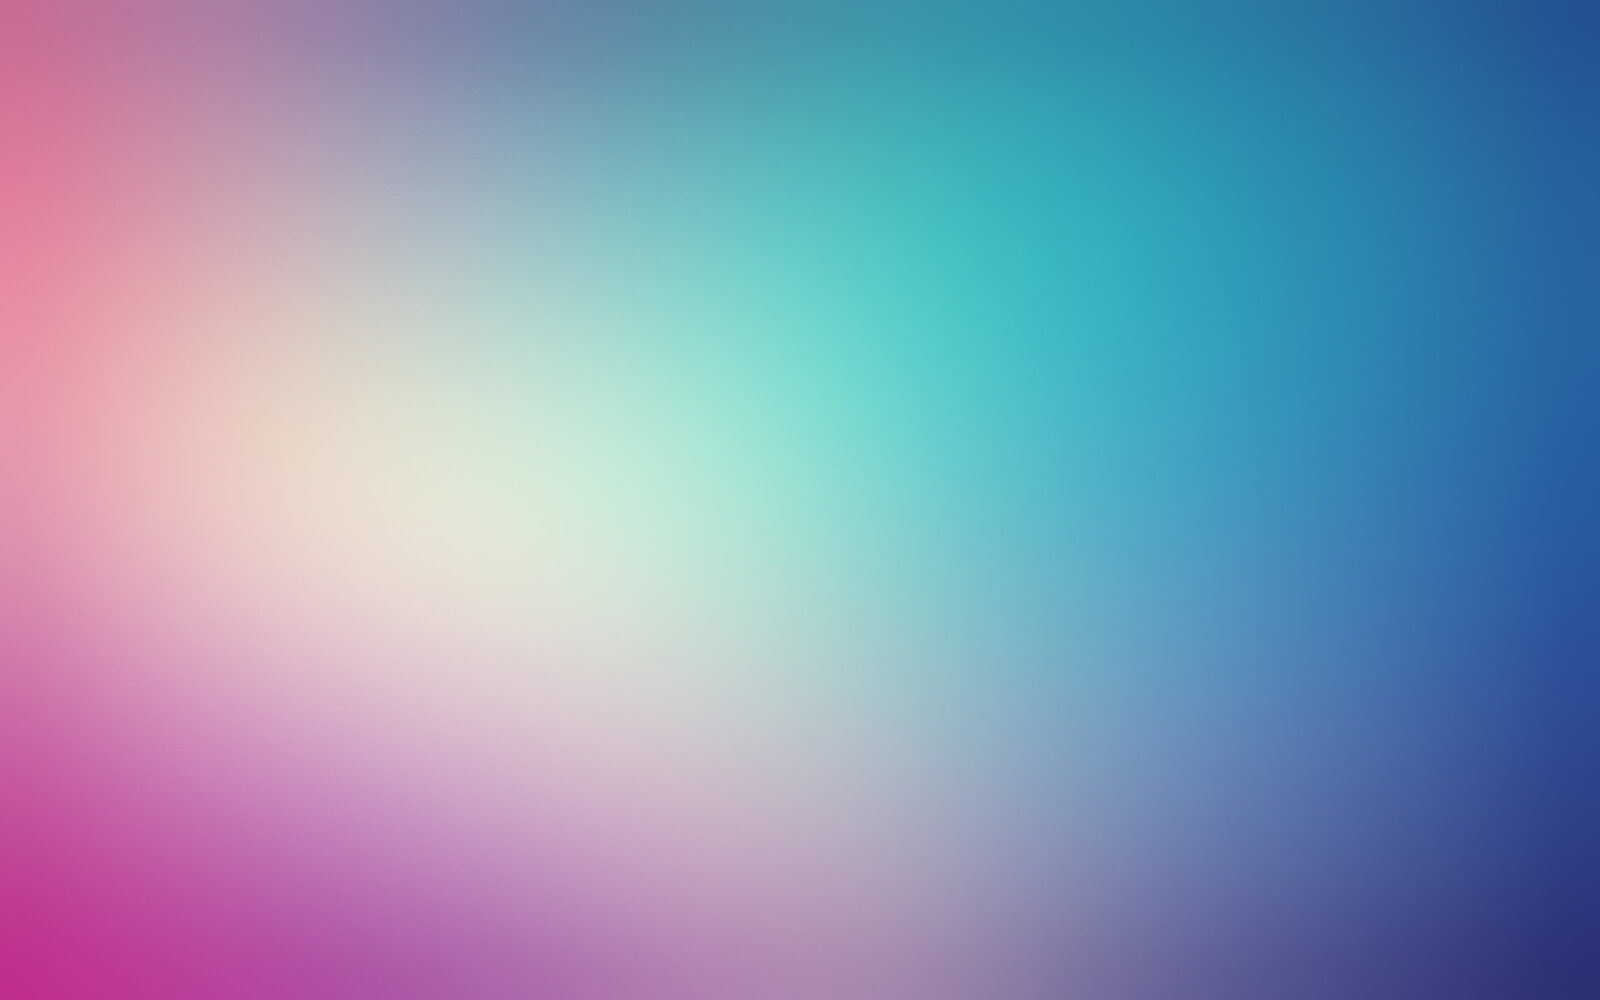 Using Gradients in Web Design: Are They a New Trend?